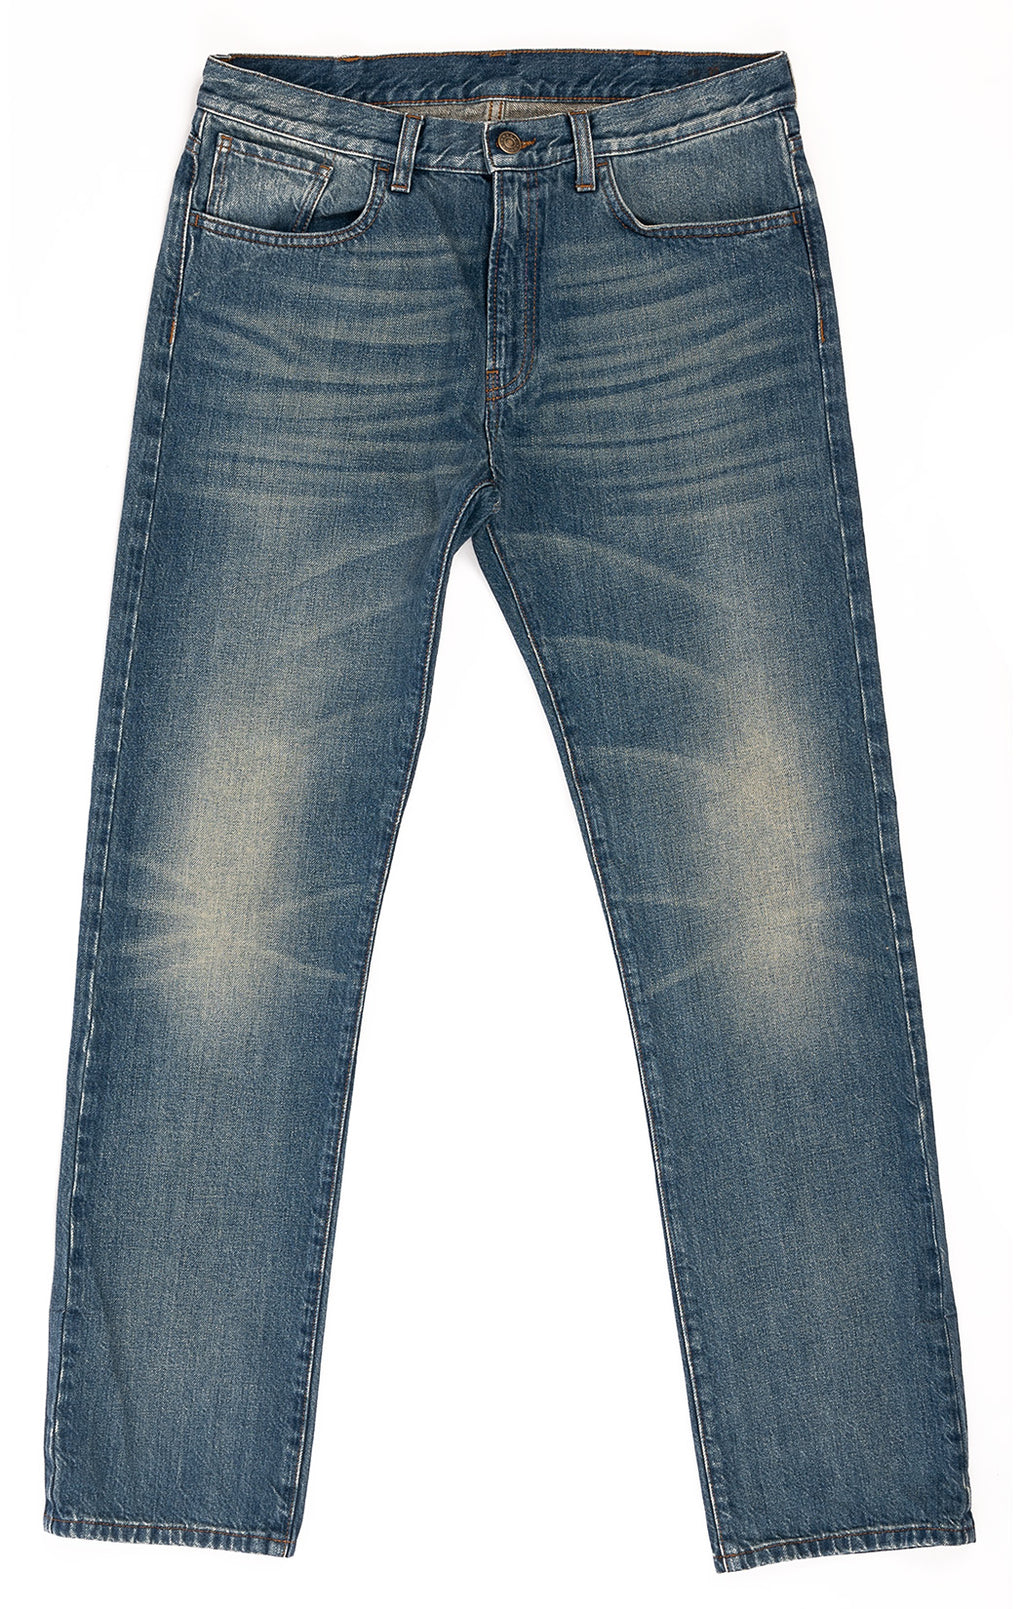 Denim fade and distressed five-pocket style jeans